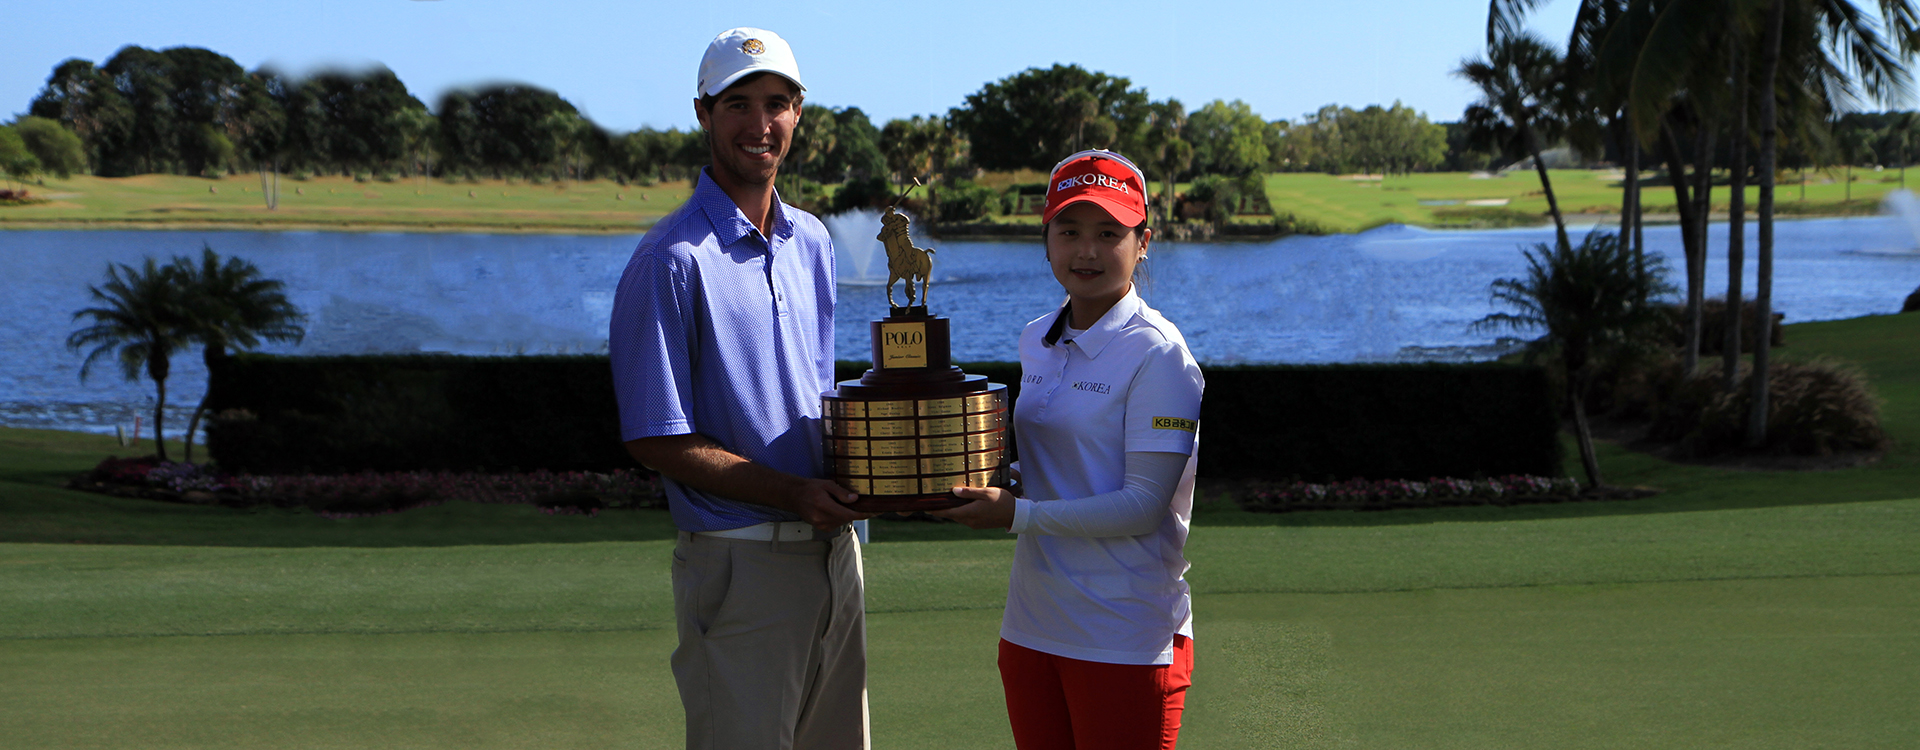 https://www.ajga.org/images/16images/homepagecarousel/9361_Bergeron,_Choi_win_the_PoloGolfJC_large.jpg